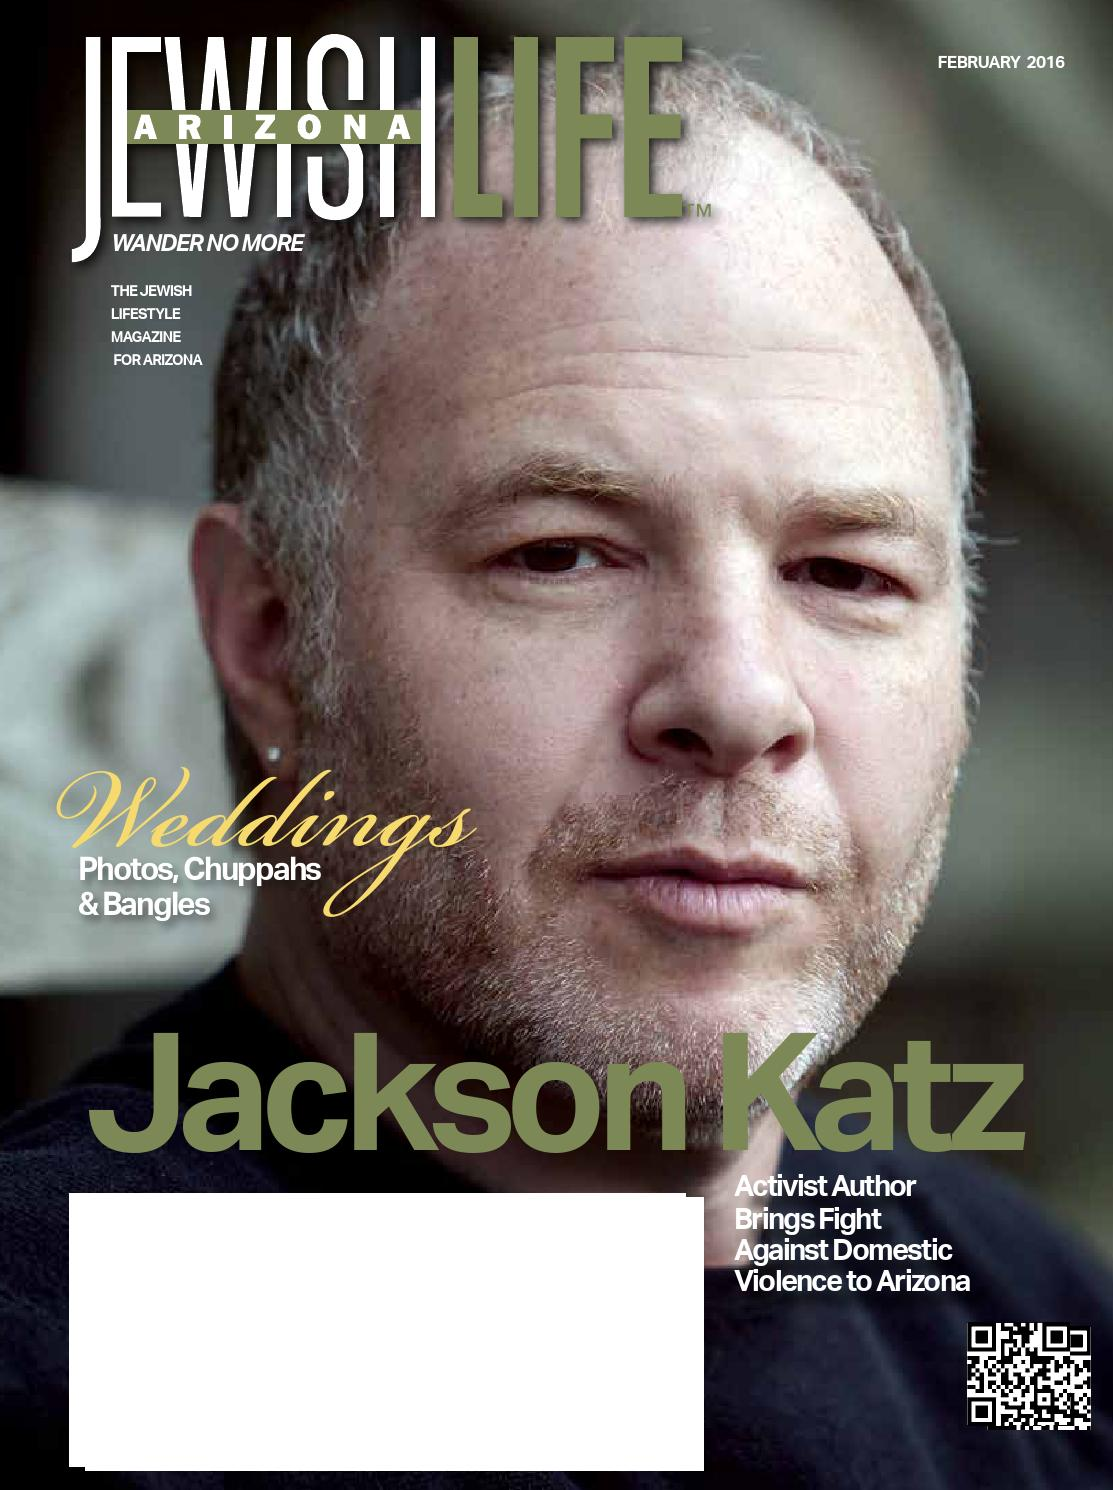 Arizona Jewish Life December      Vol      Issue   by JewishLifeMagazine   issuu Issuu